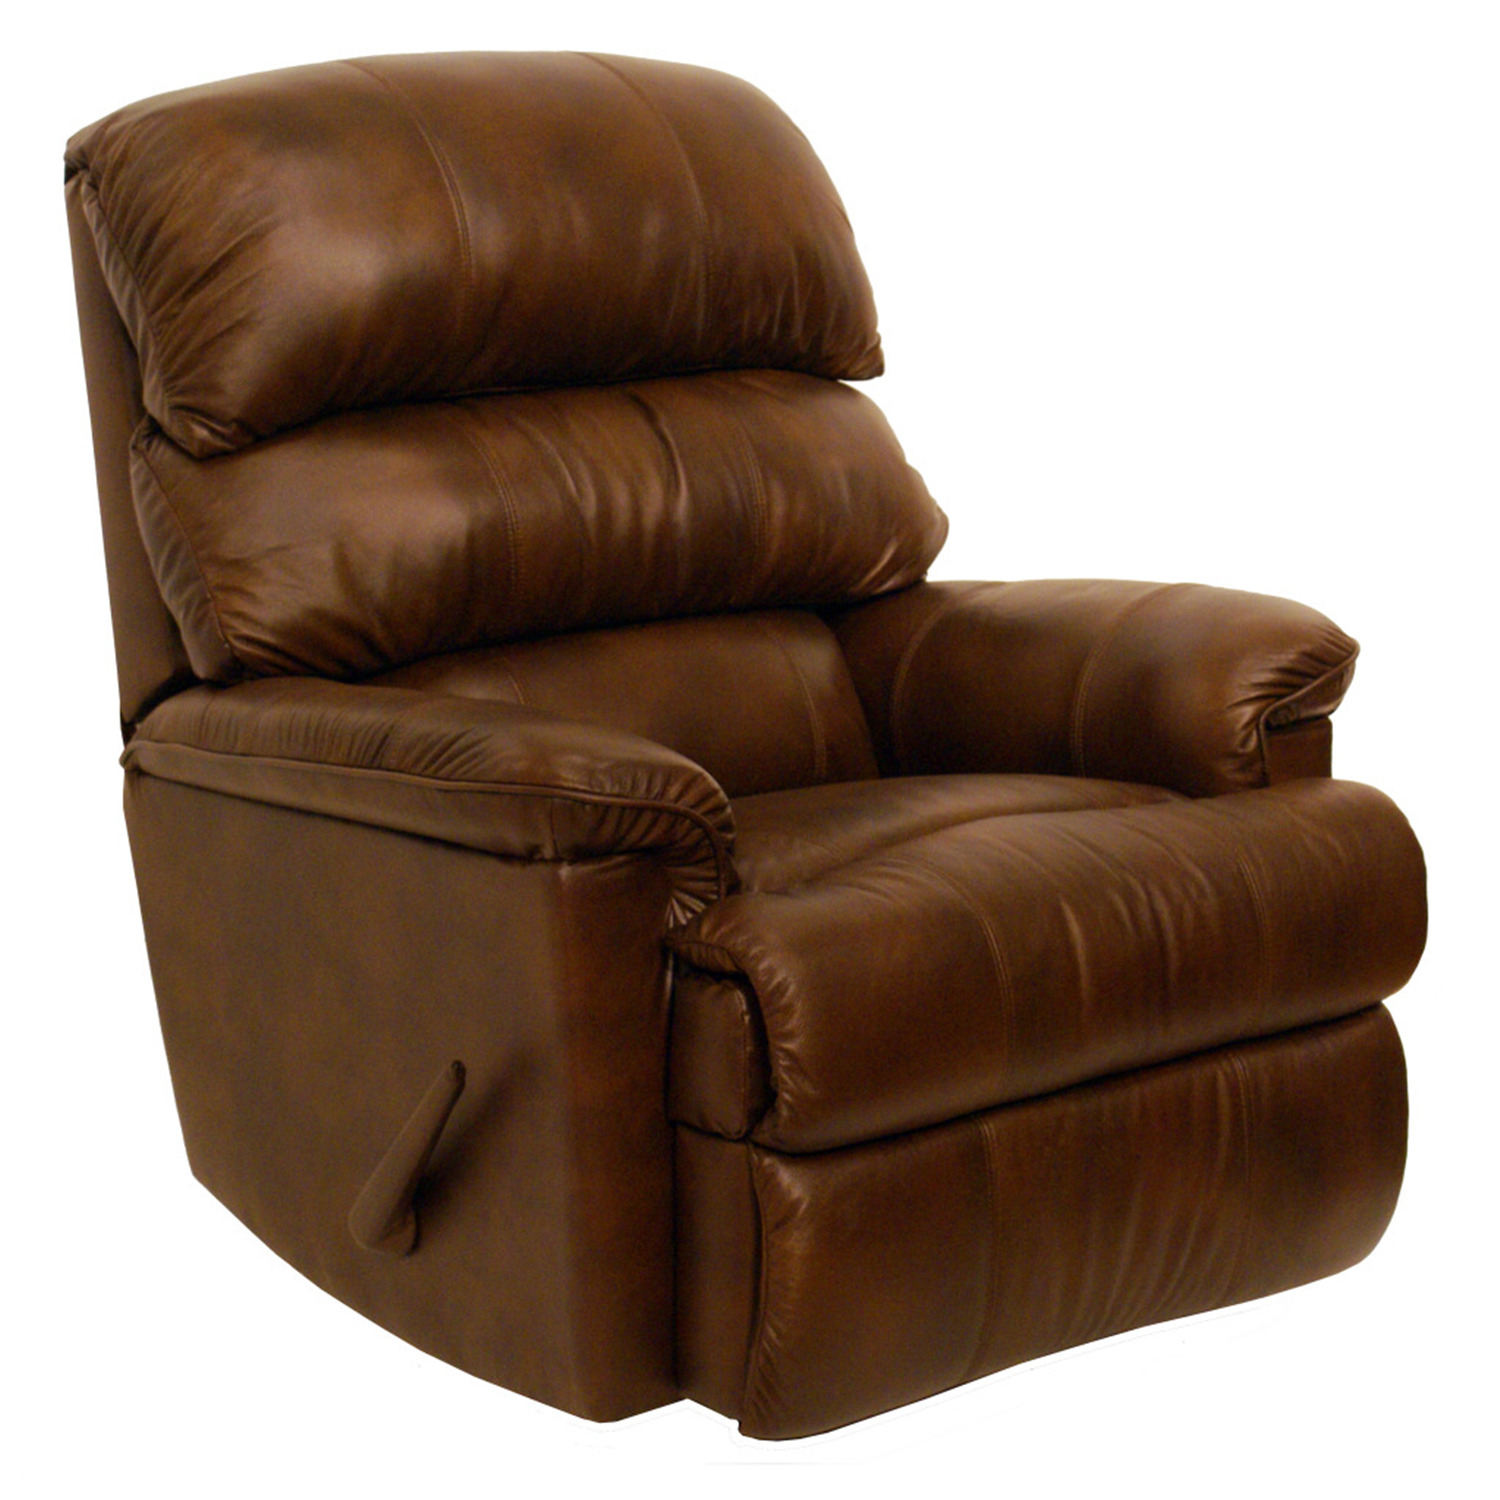 Catnapper bentley leather rocker recliner by oj commerce for Berkline chaise lounge